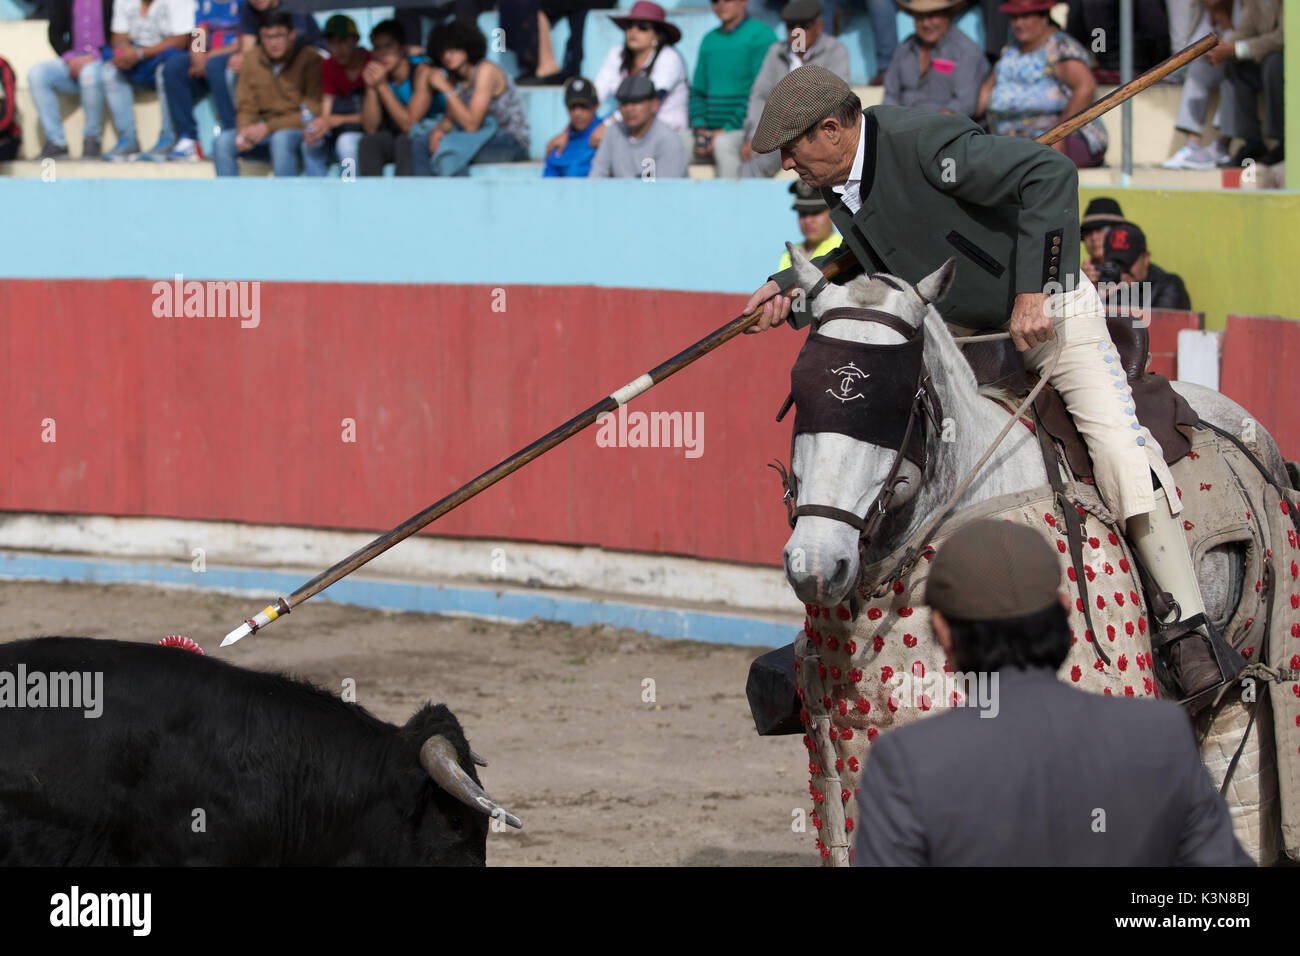 June 18, 2017 Pujili, Ecuador: picador on horseback redy to pierce the back of the bull with lance Stock Photo